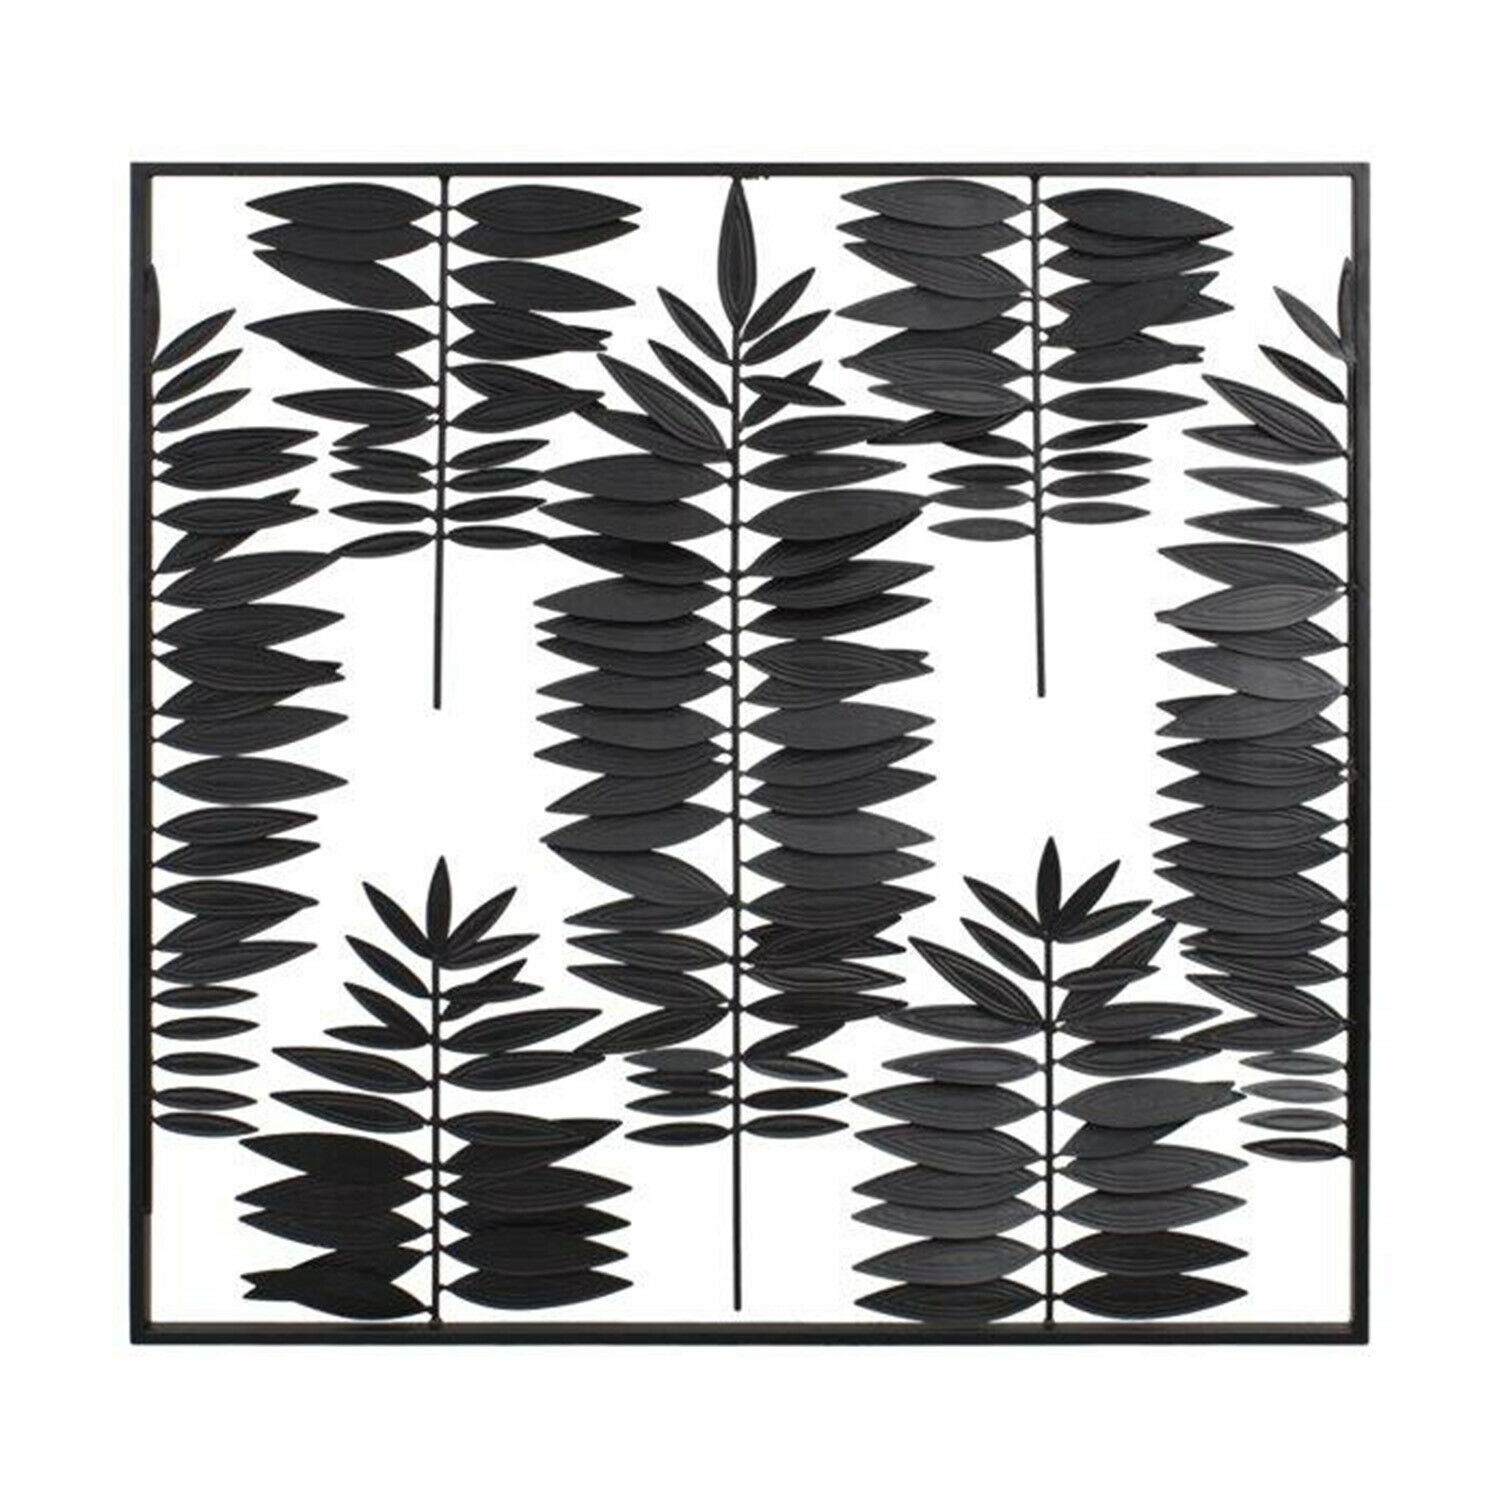 Abstract Pineapples Metal Hanging Home Living Room Ornament Wall Art Decor